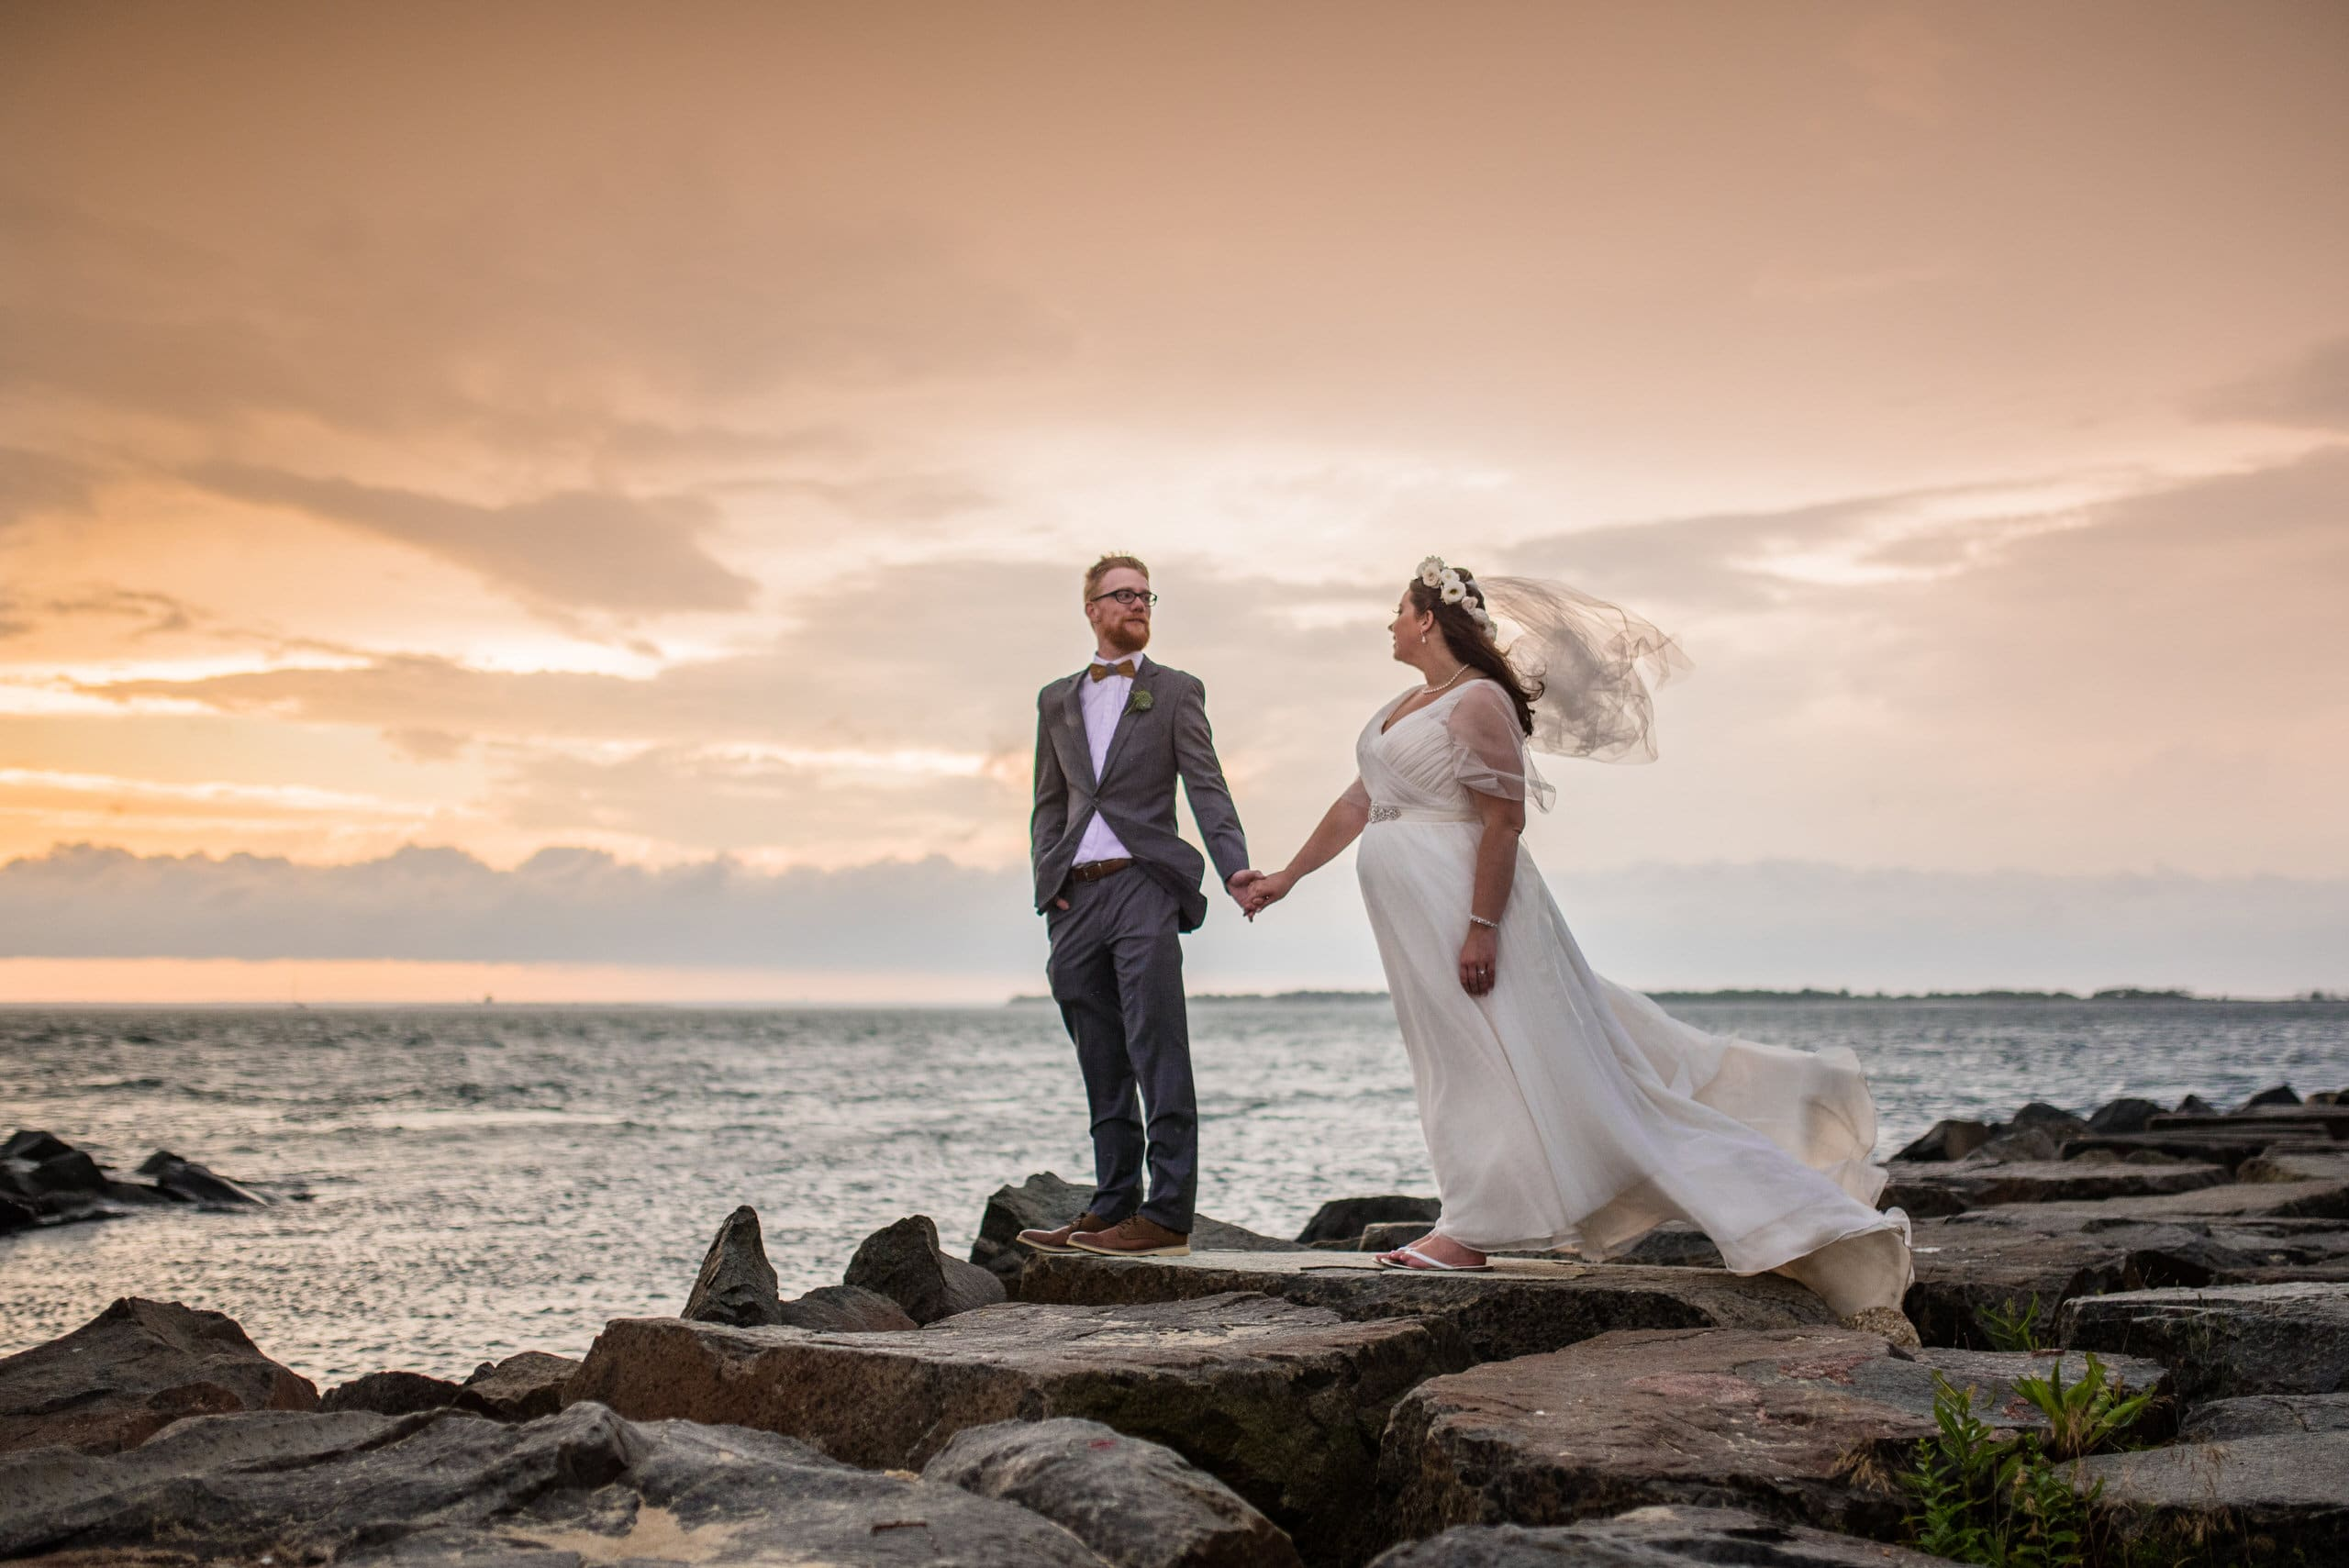 View More: http://abigailgingeralephotography.pass.us/websiteimages